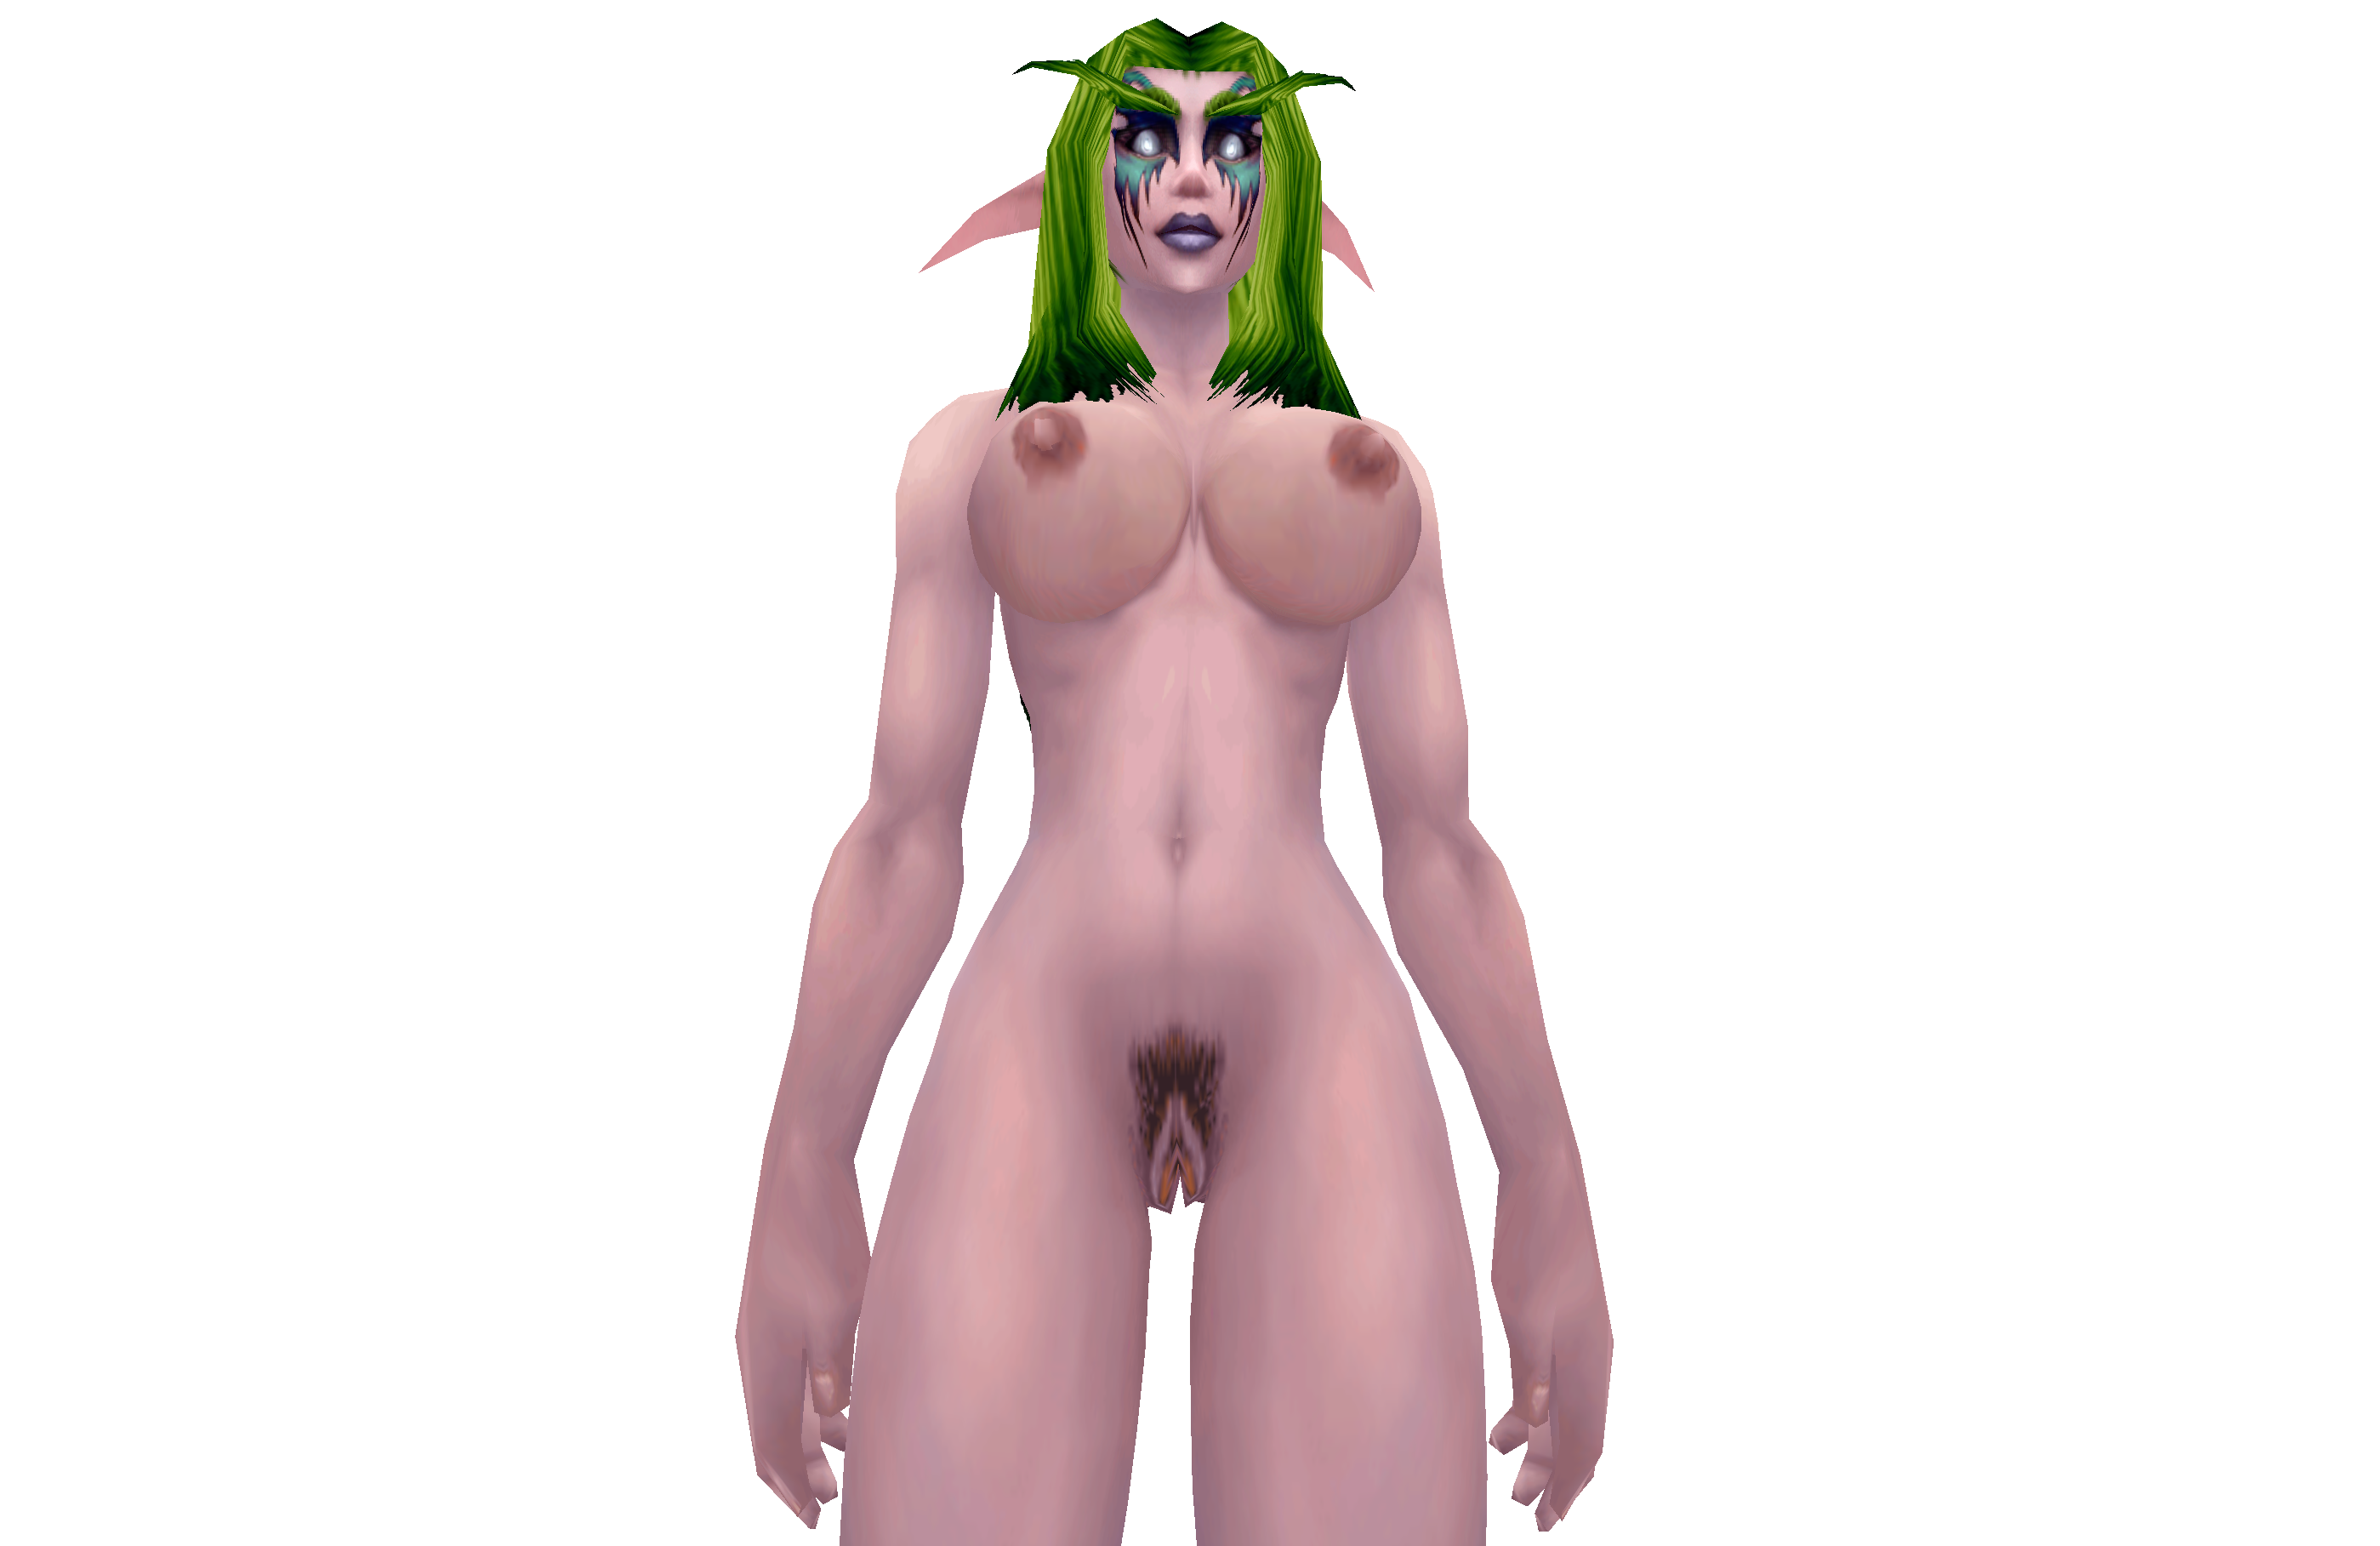 Wow in game characters naked mod softcore clip